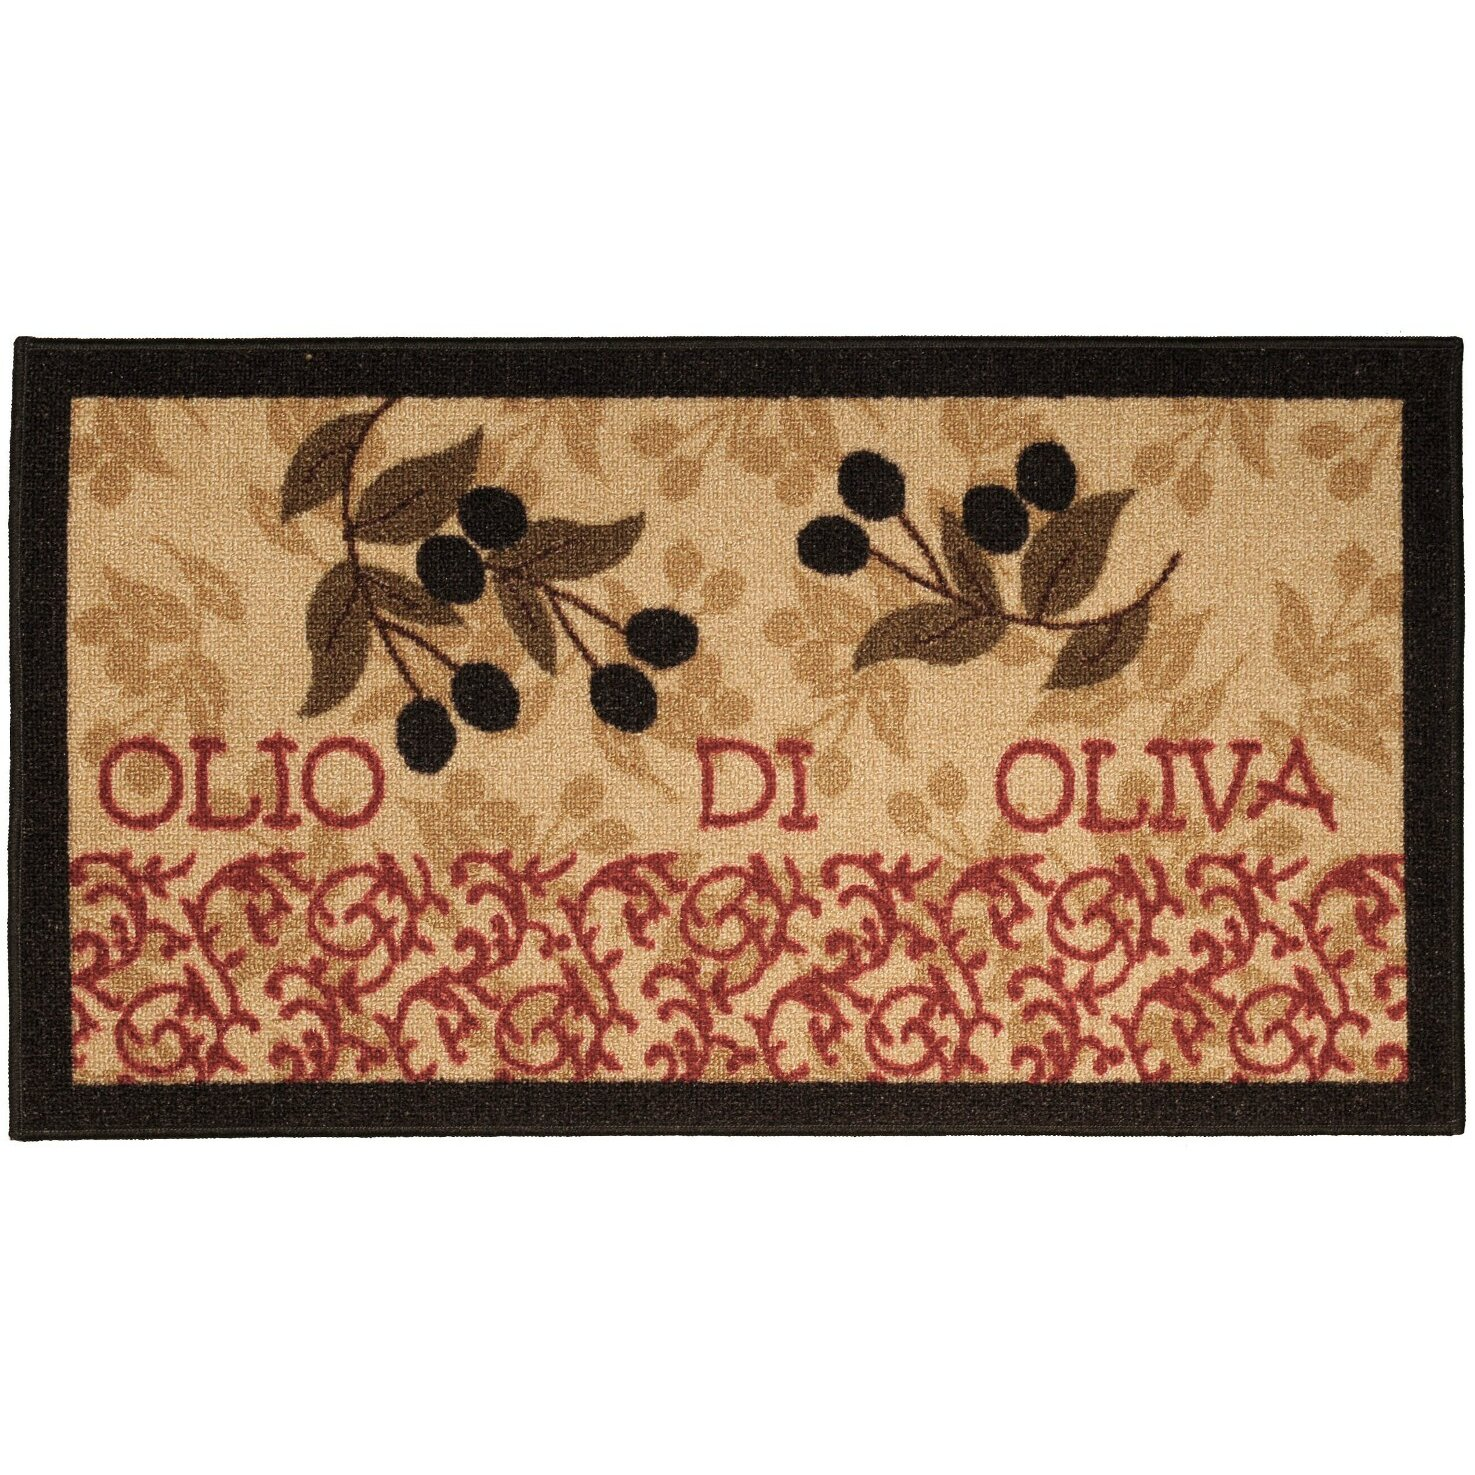 Kitchen Table On Rug: Rugnur Cucina Italian Garden Olive Kitchen Area Rug